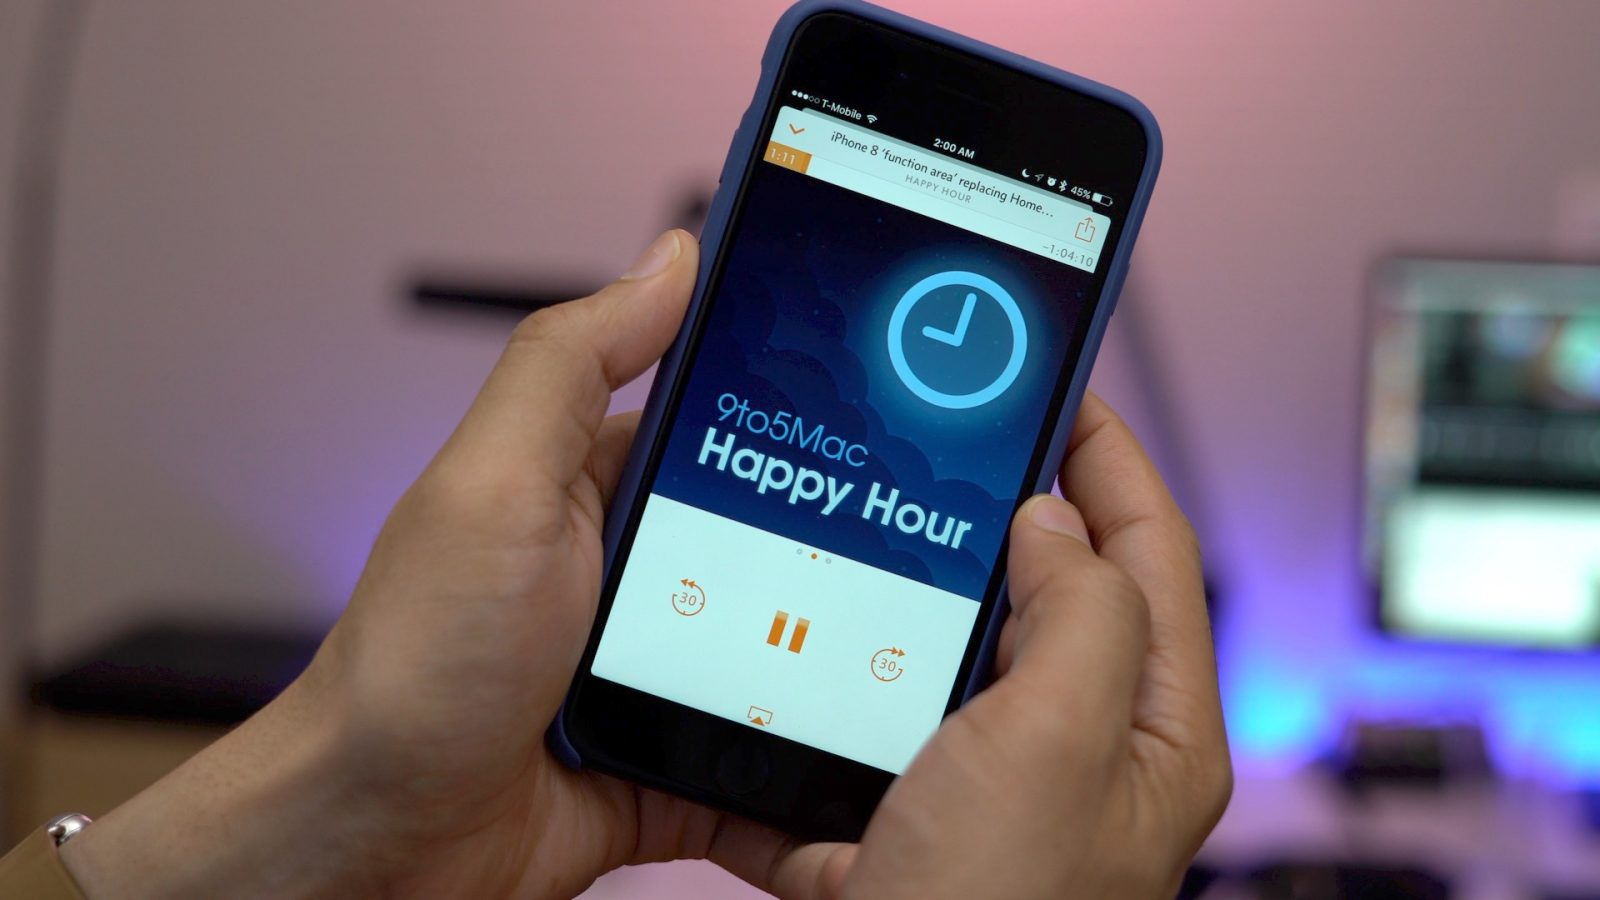 overcast podcast app adds new smart resume feature more 9to5mac